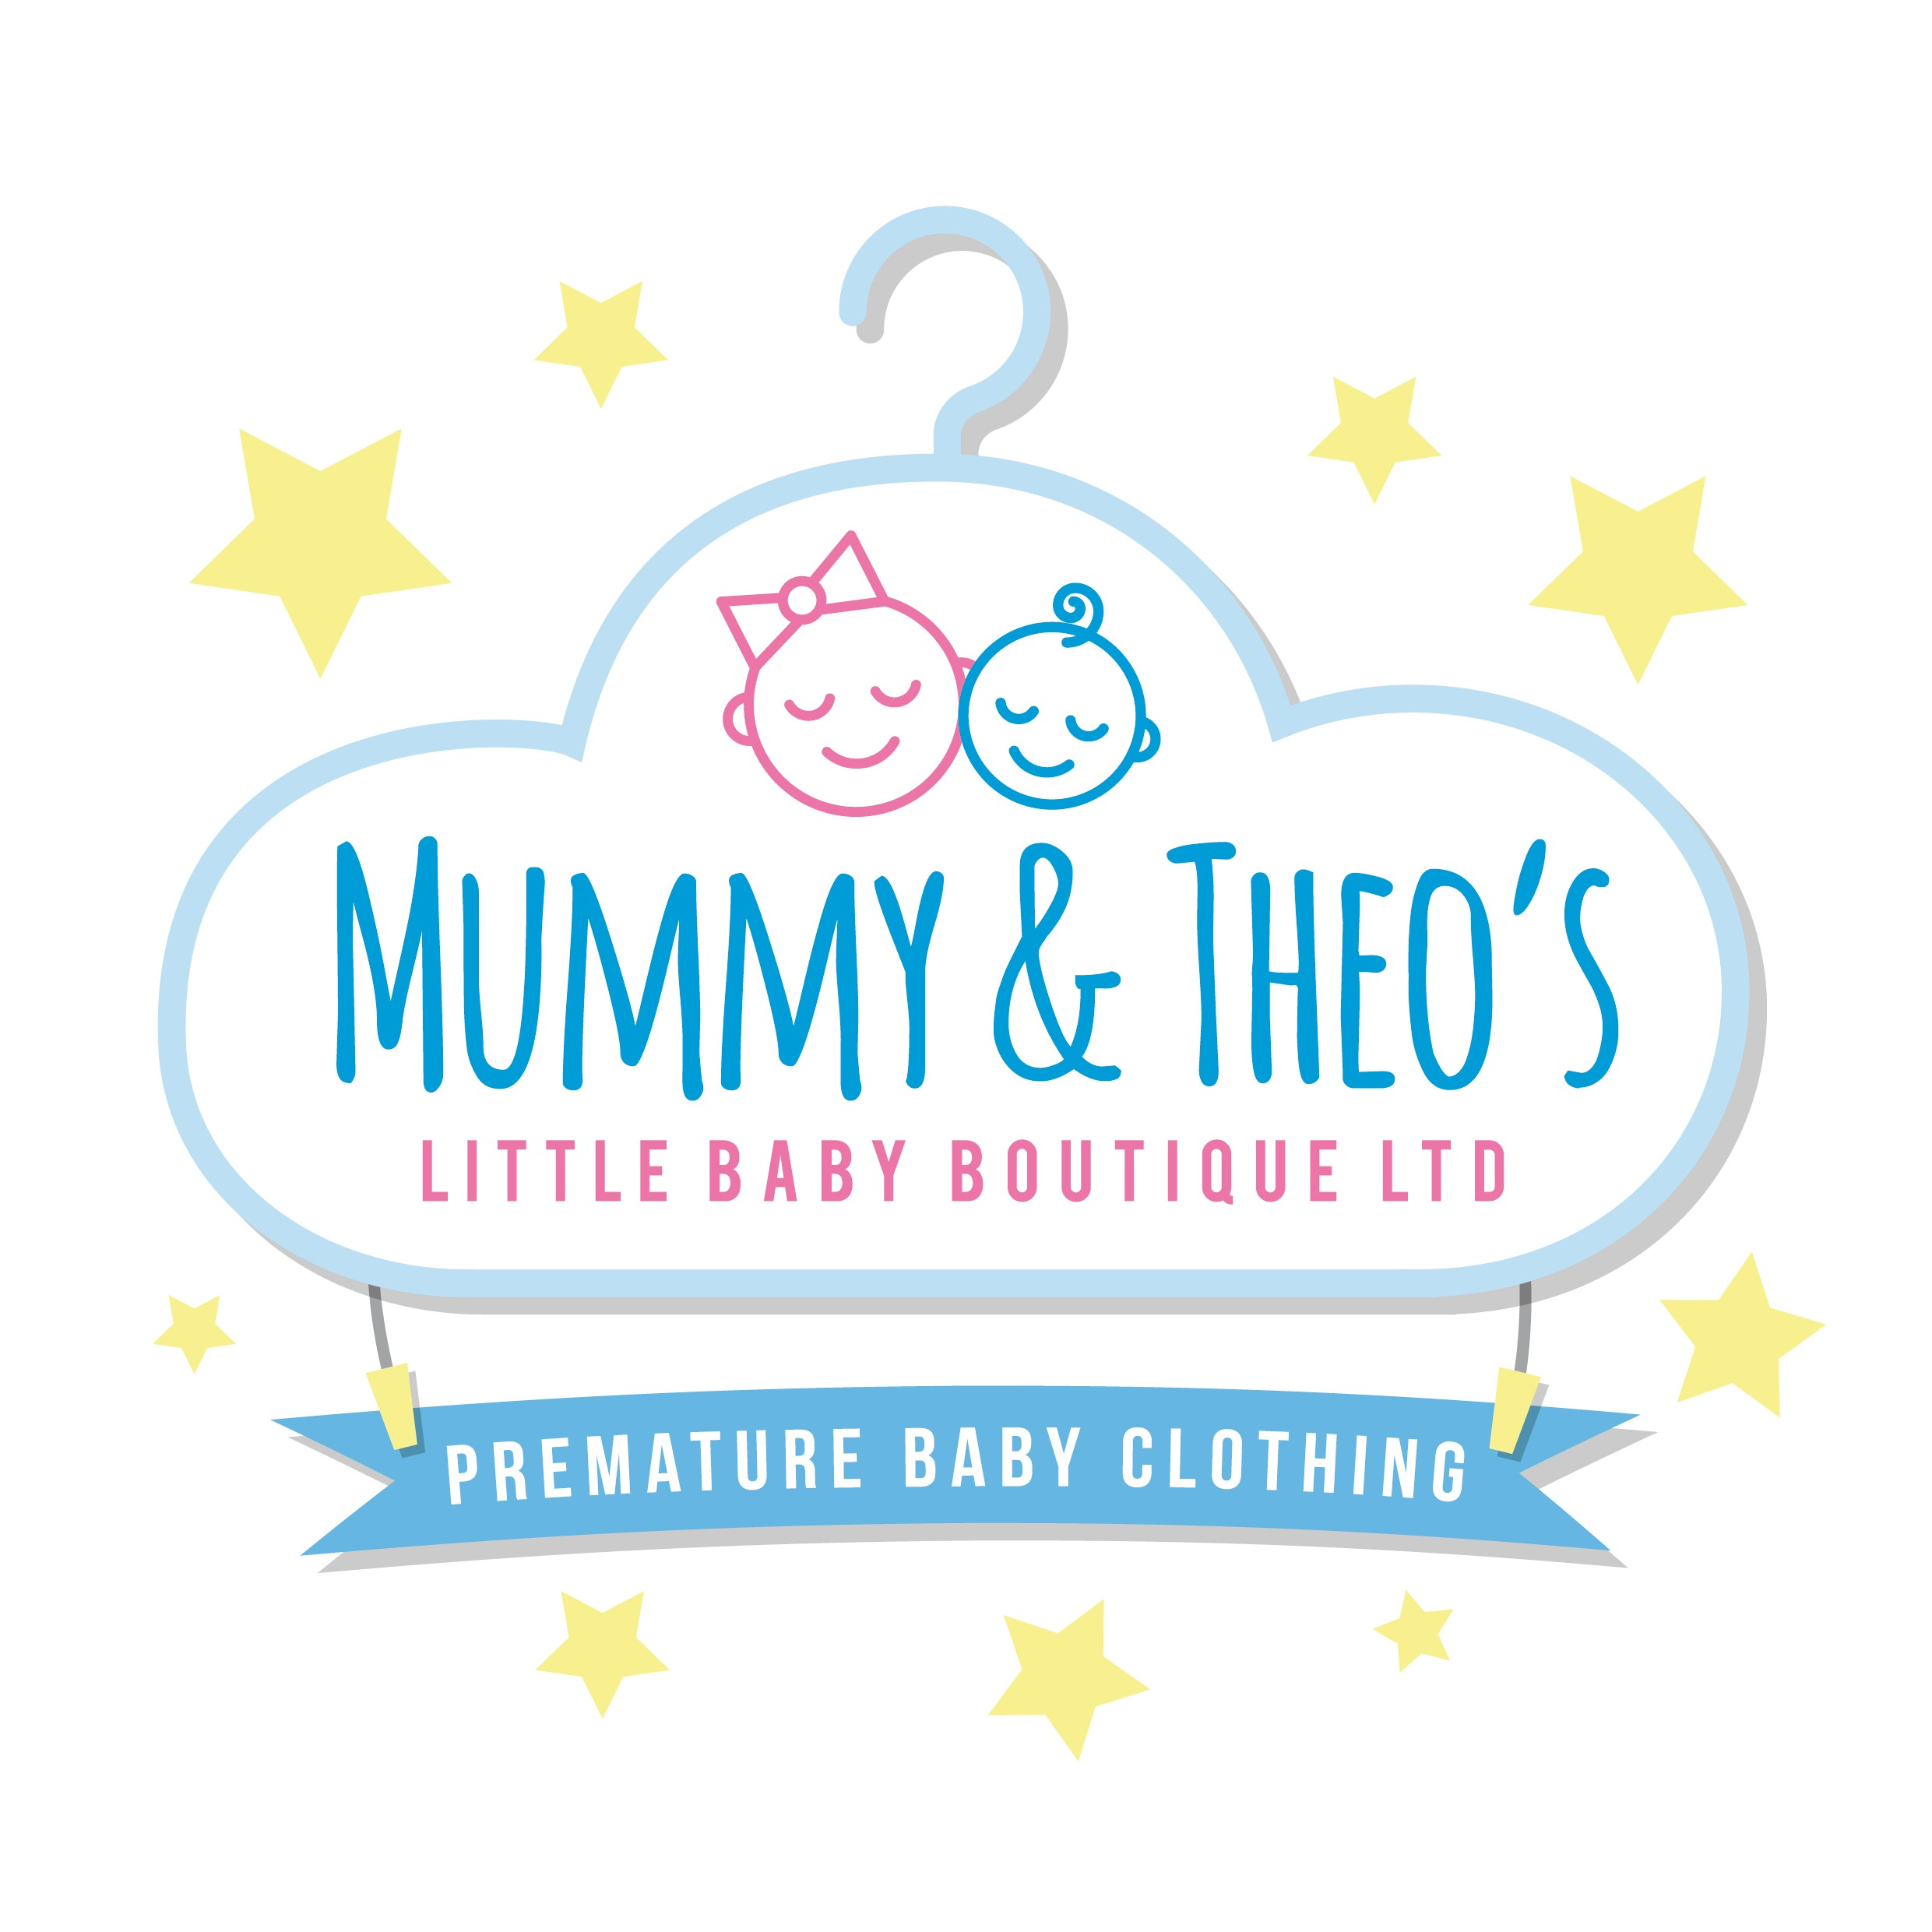 Mummy and Theos Little Baby Boutique Ltd